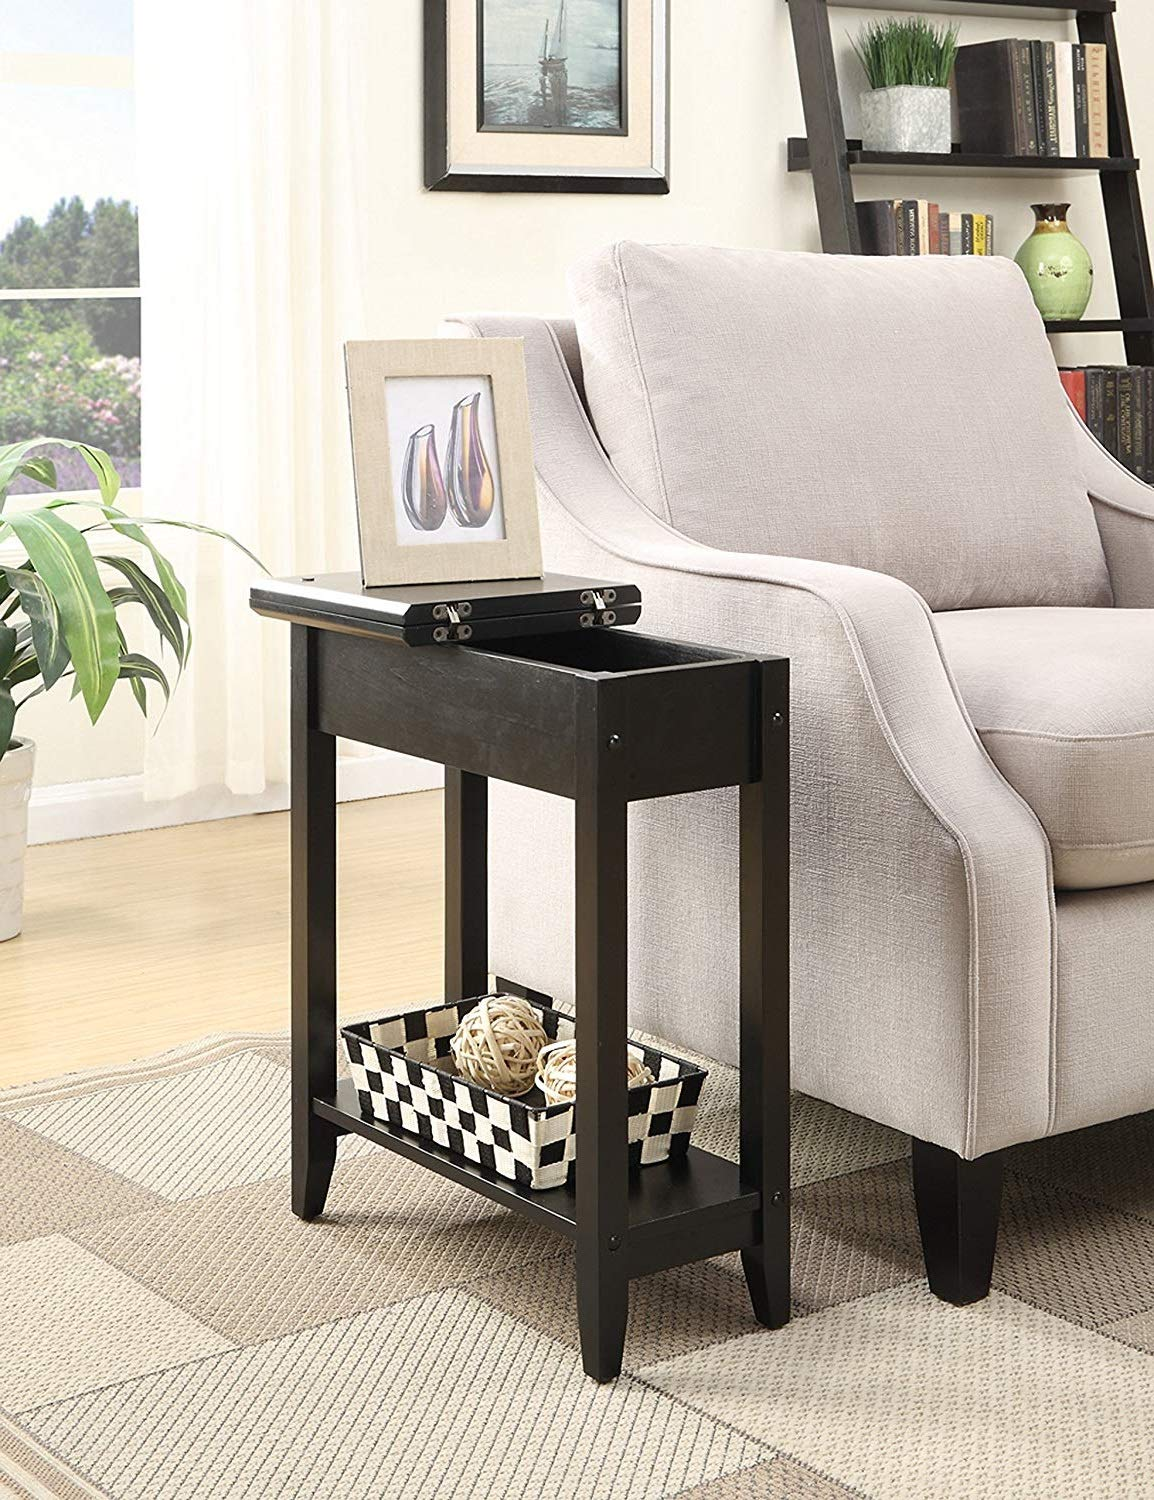 Flip top slim tall end table space saver wooden narrow with storage shelf living room nightstand chairside bedside sofa table phone stand hallway home